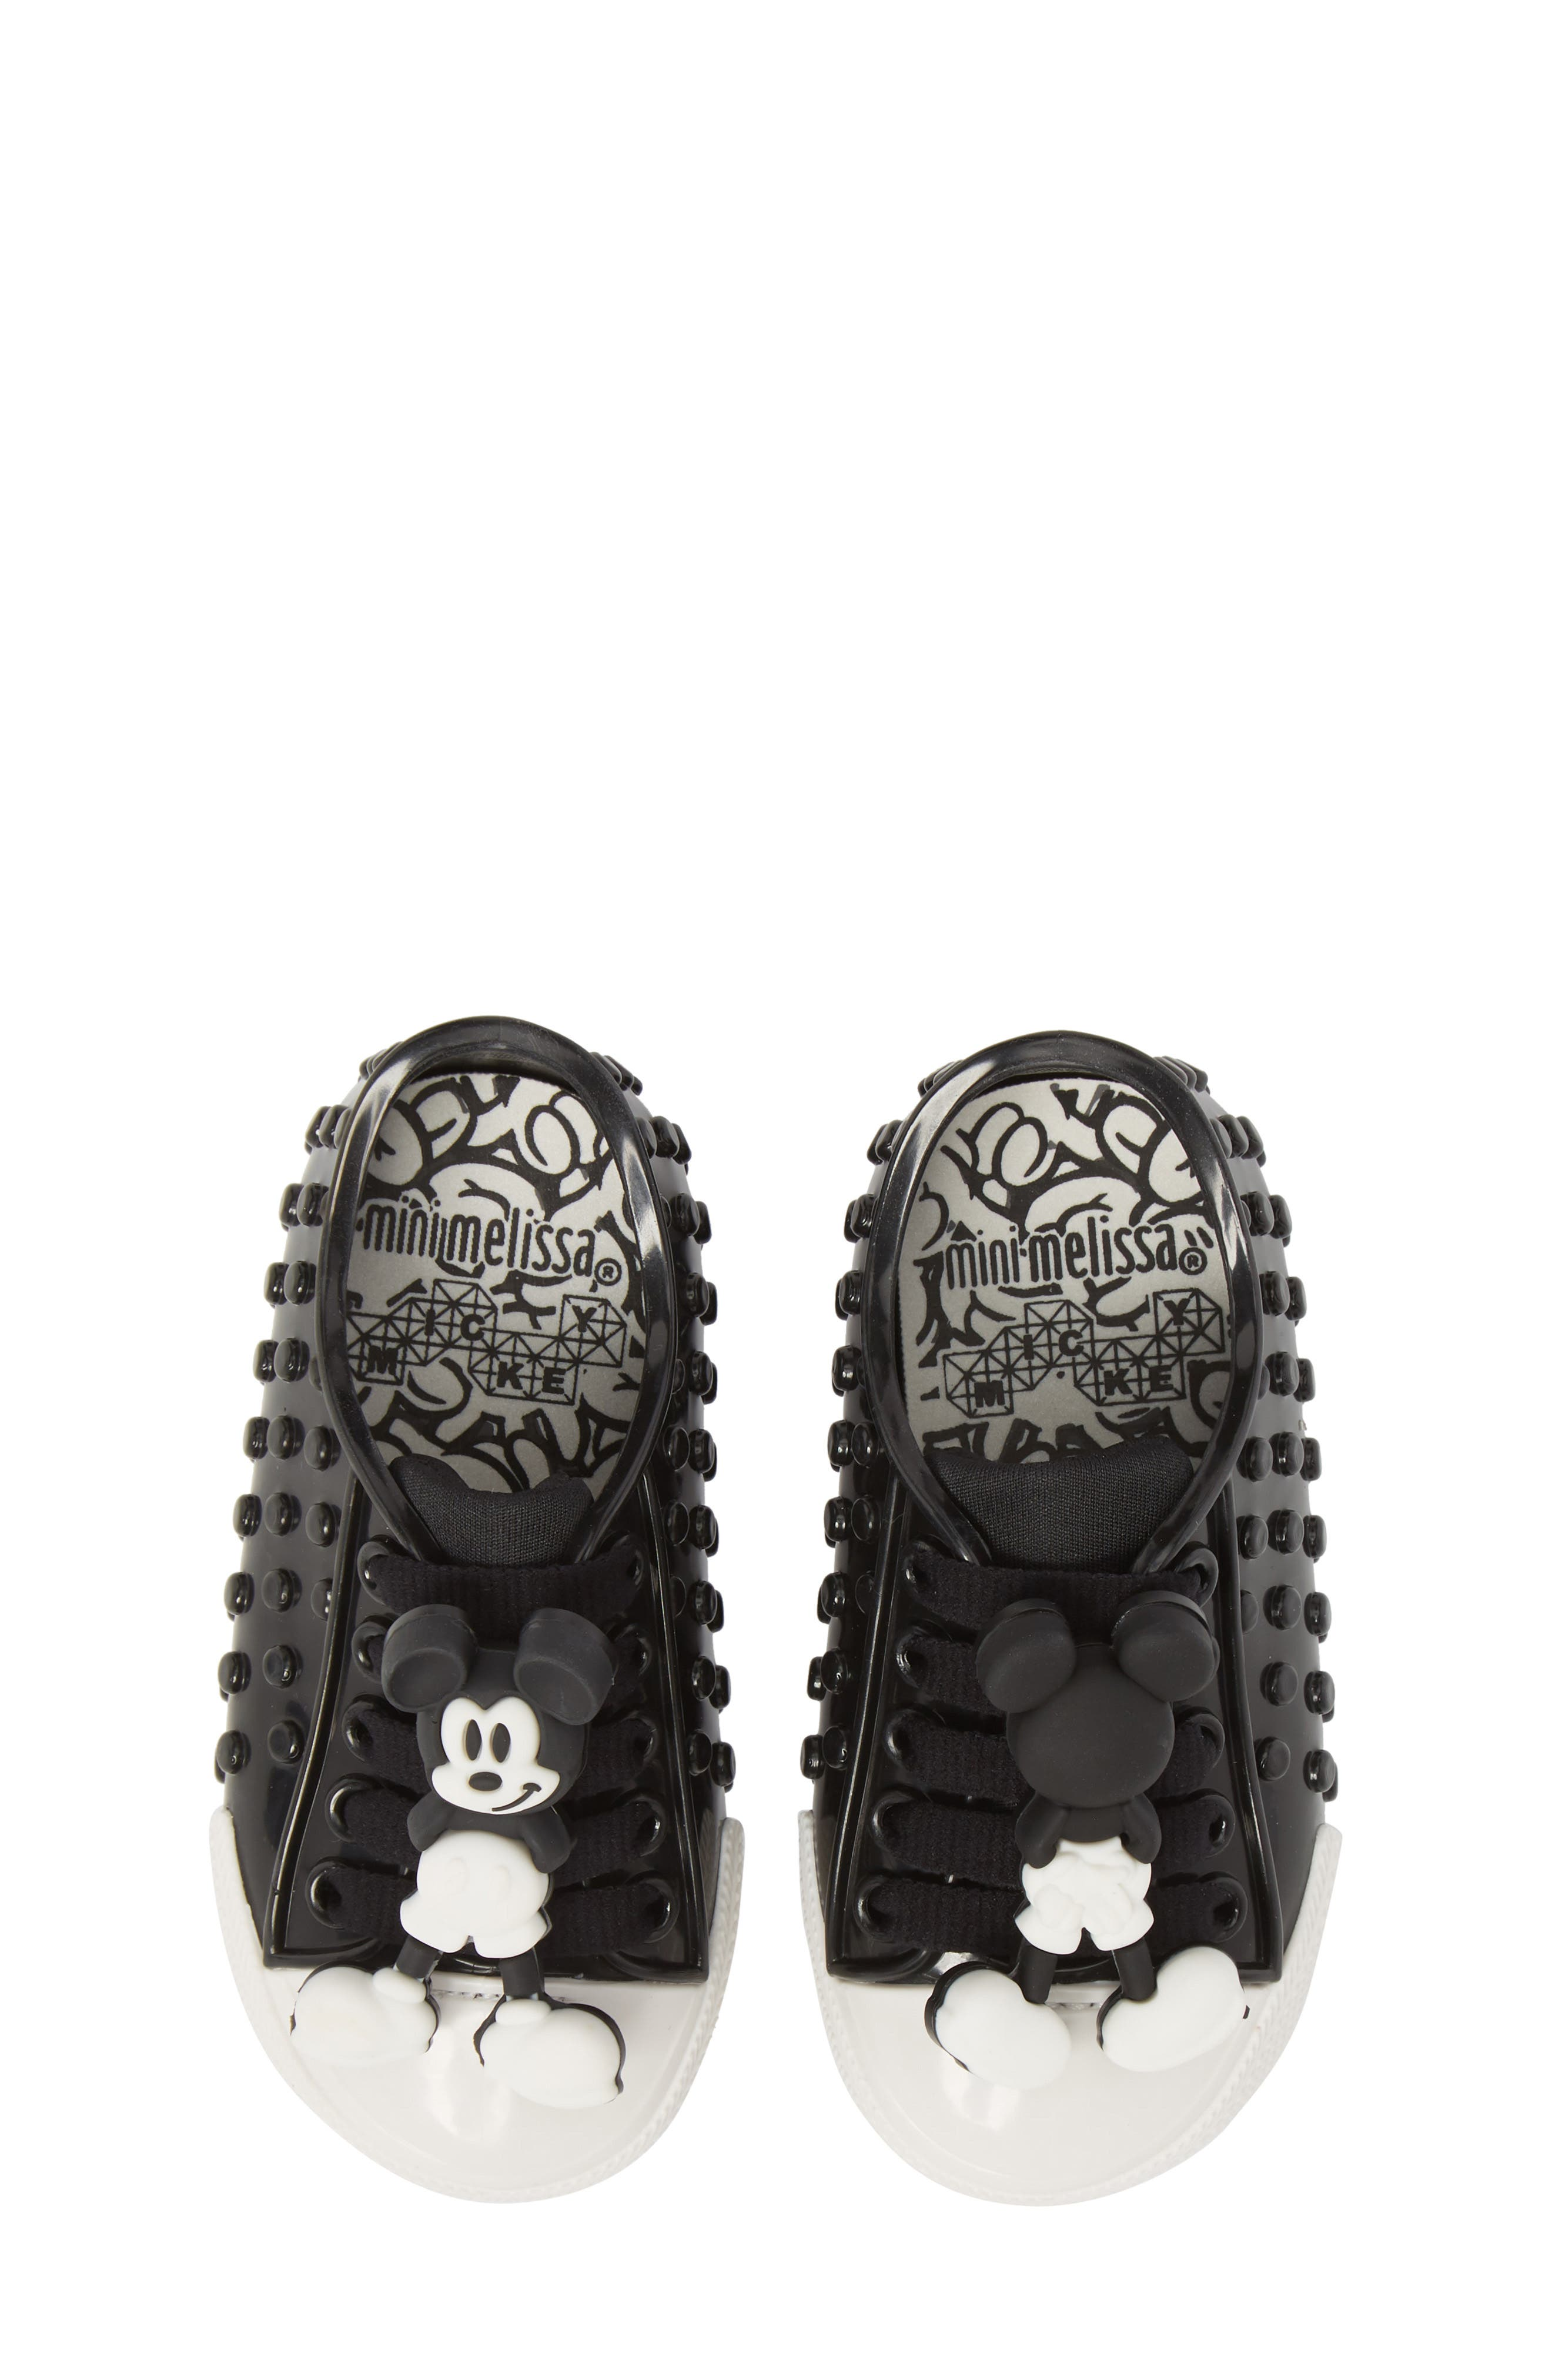 MINI MELISSA Polibolha Disney's Mickey Mouse<sup>®</sup> Sneaker, Main, color, 001